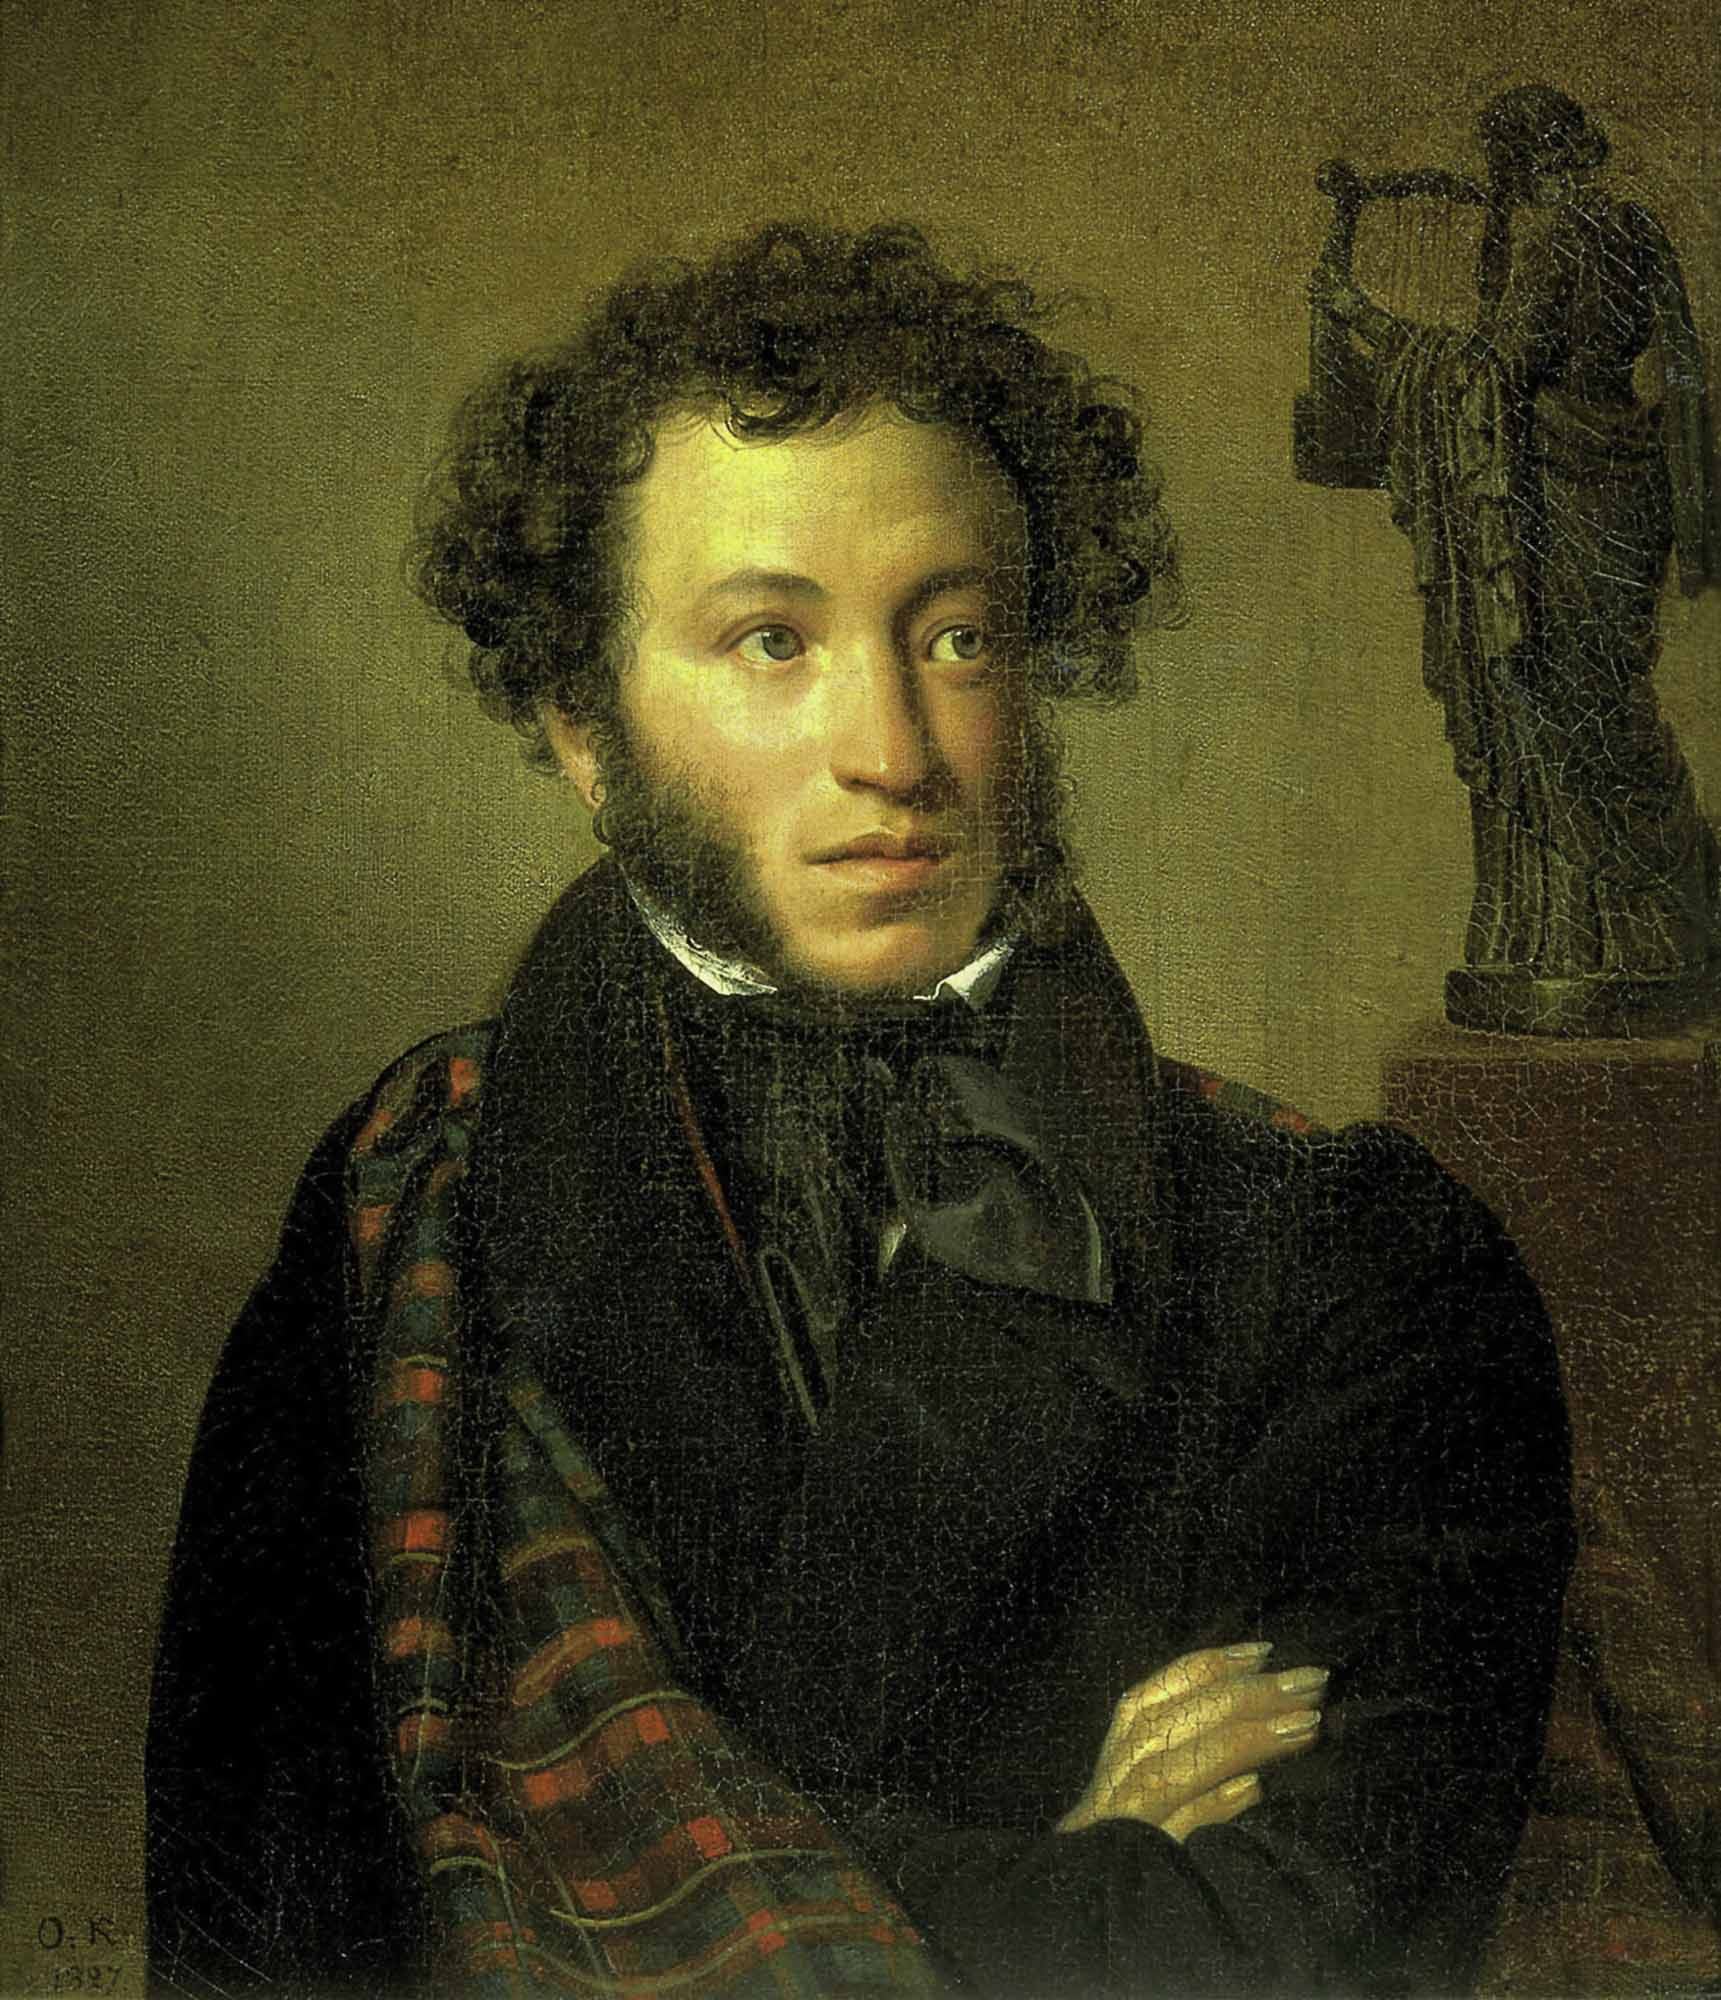 The portrait of Alexander Pushkin by Orest Kiprensky